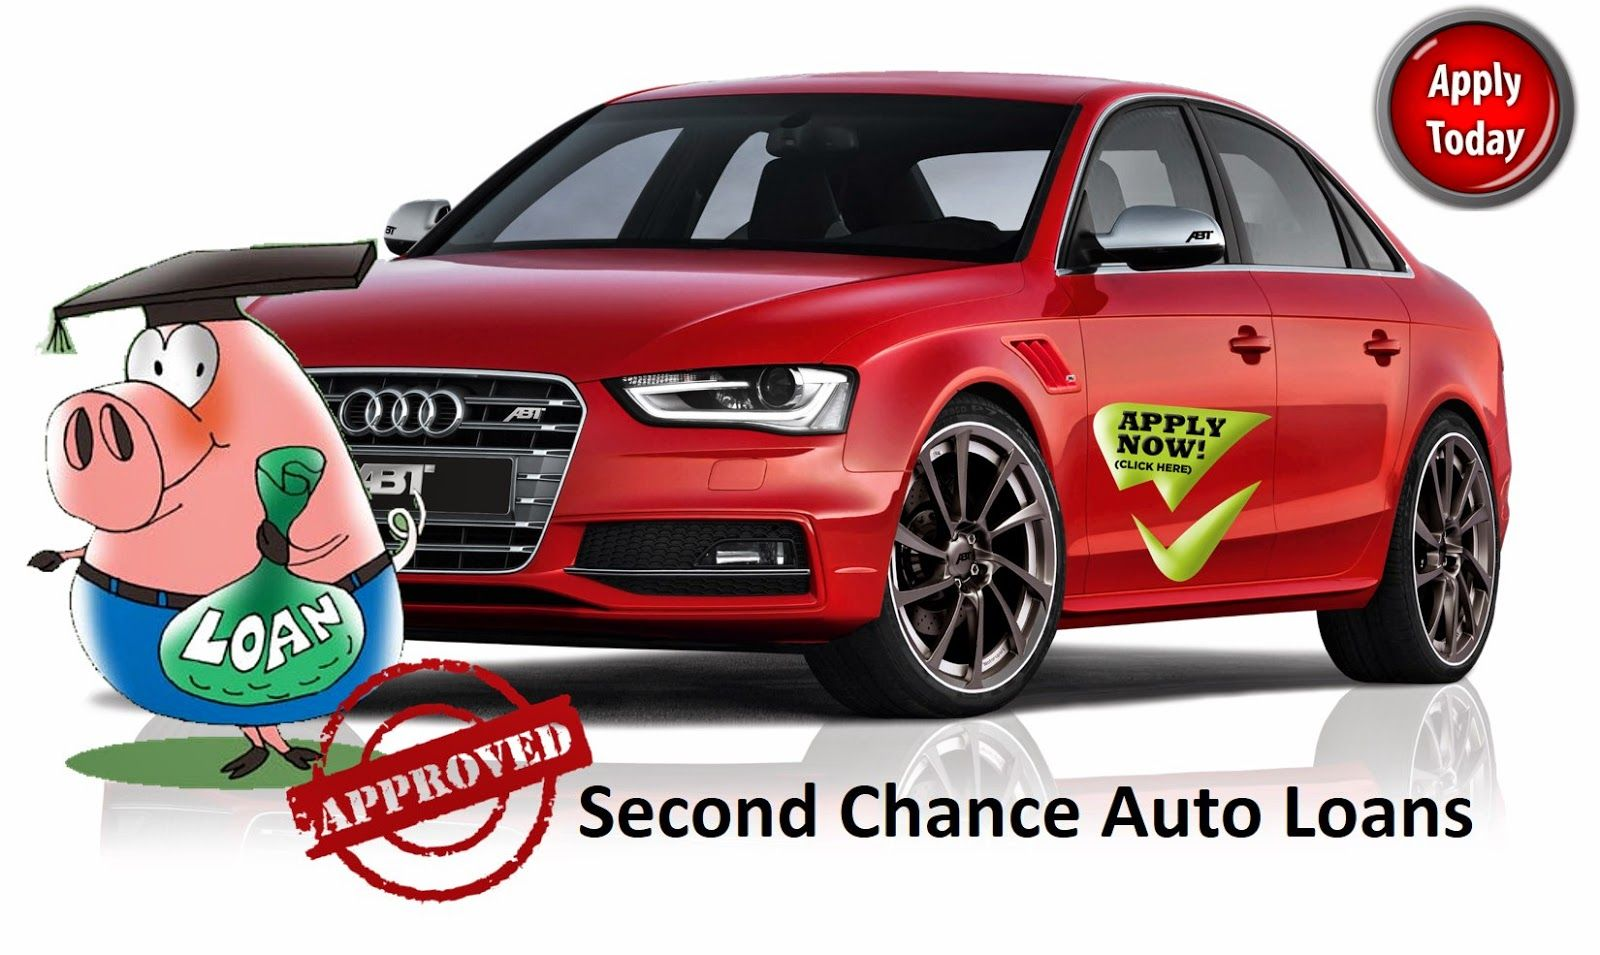 Get the best and lowest interest rate car loans for the